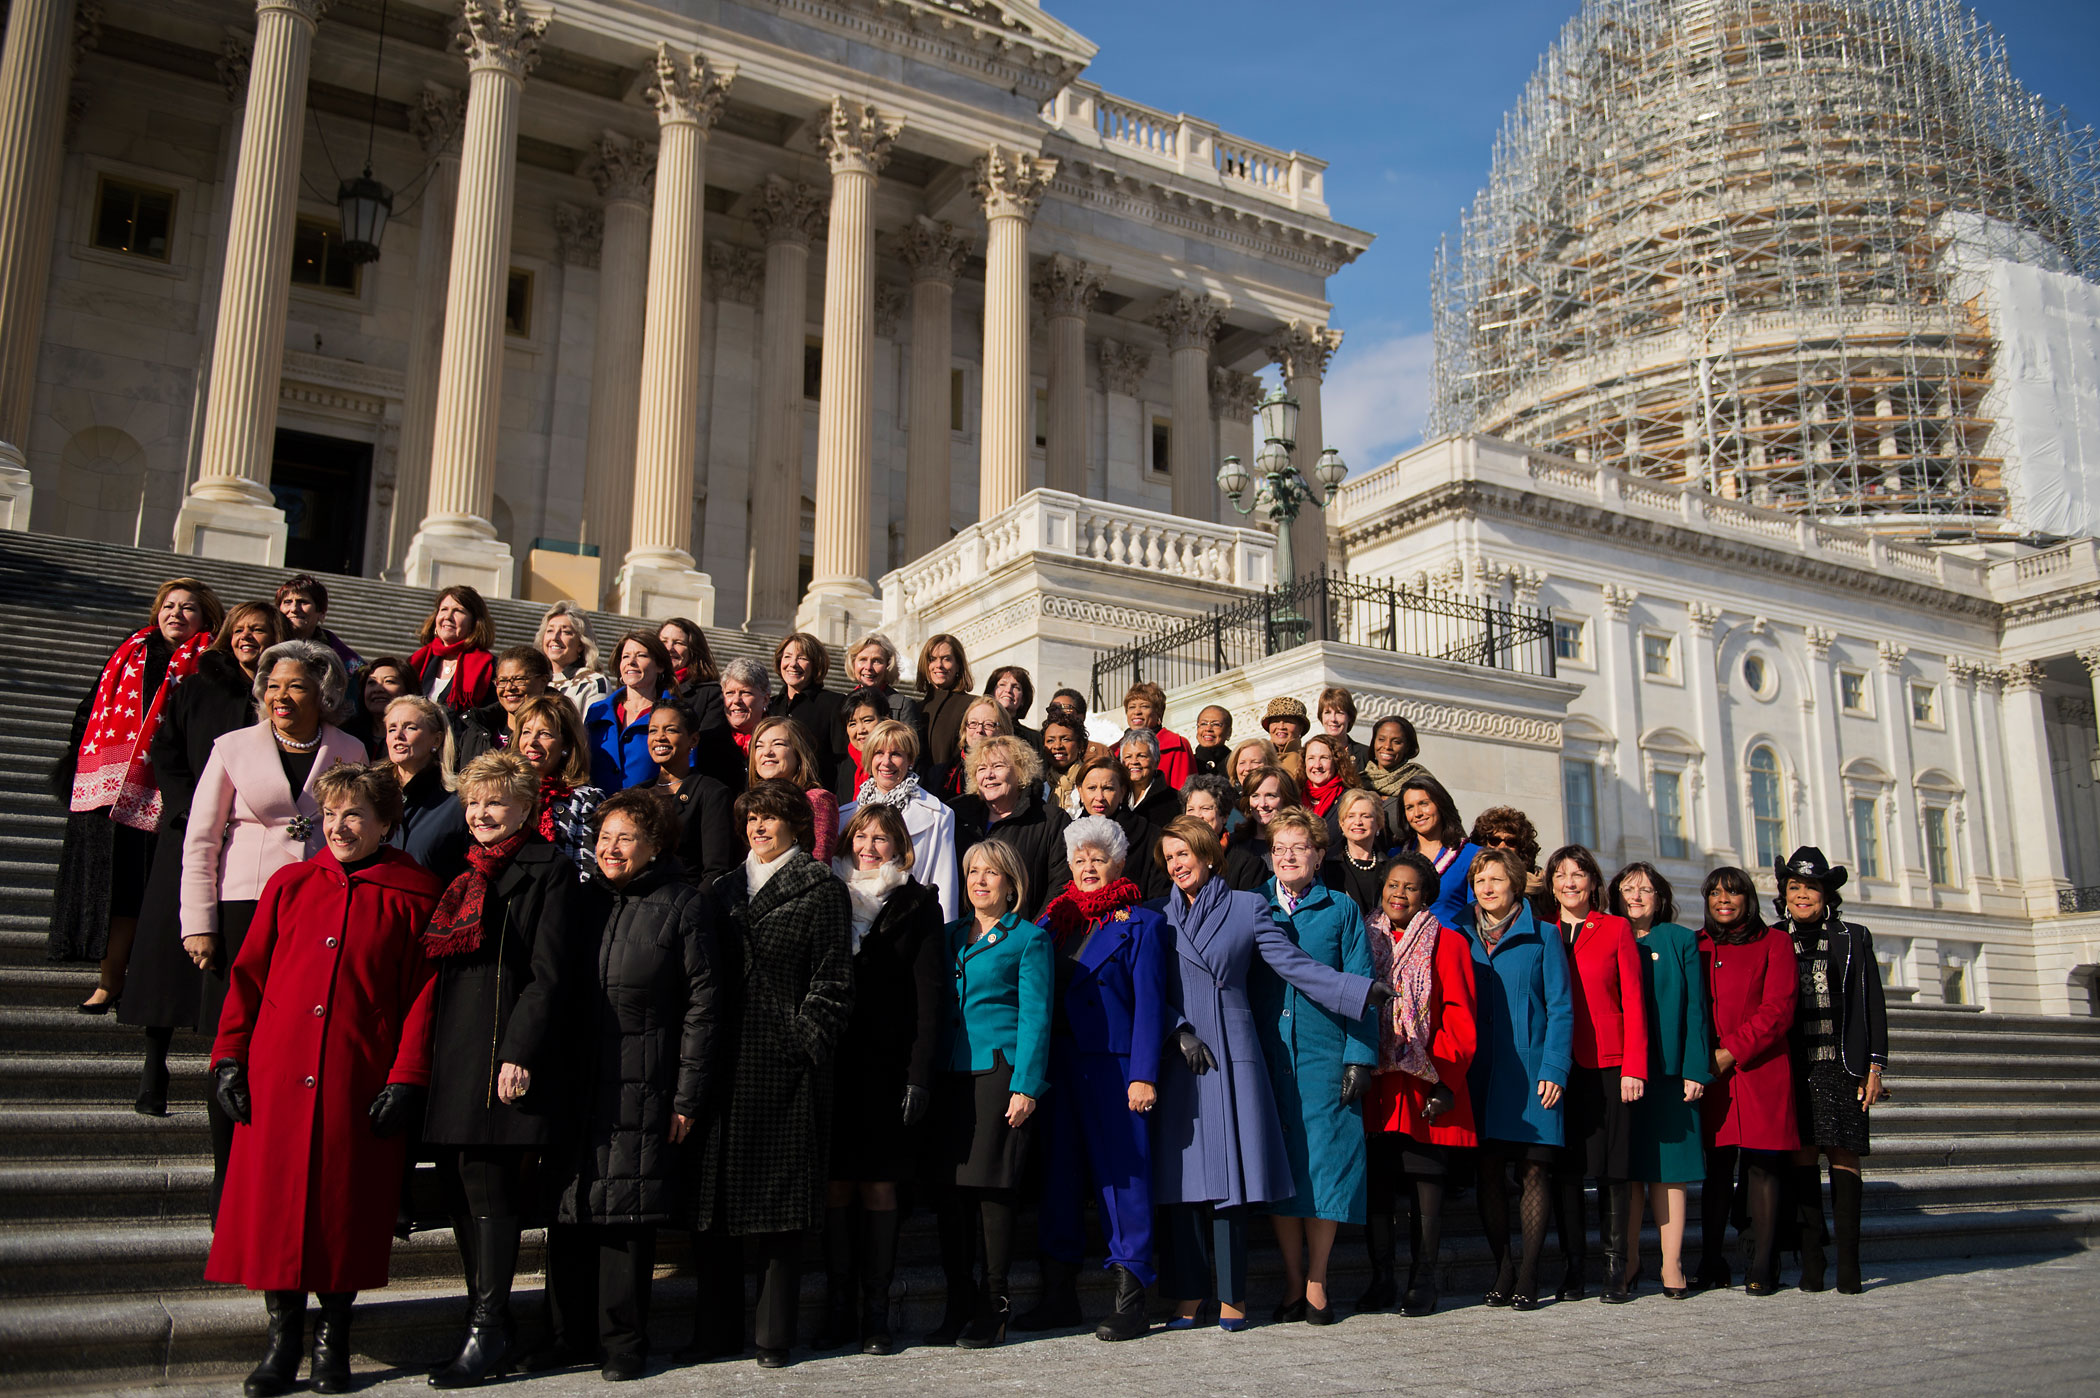 House Democratic women of the 114th Congress including House Minority Leader Nancy Pelosi, pose for a picture on the House steps of the Capitol, Jan. 7, 2015.